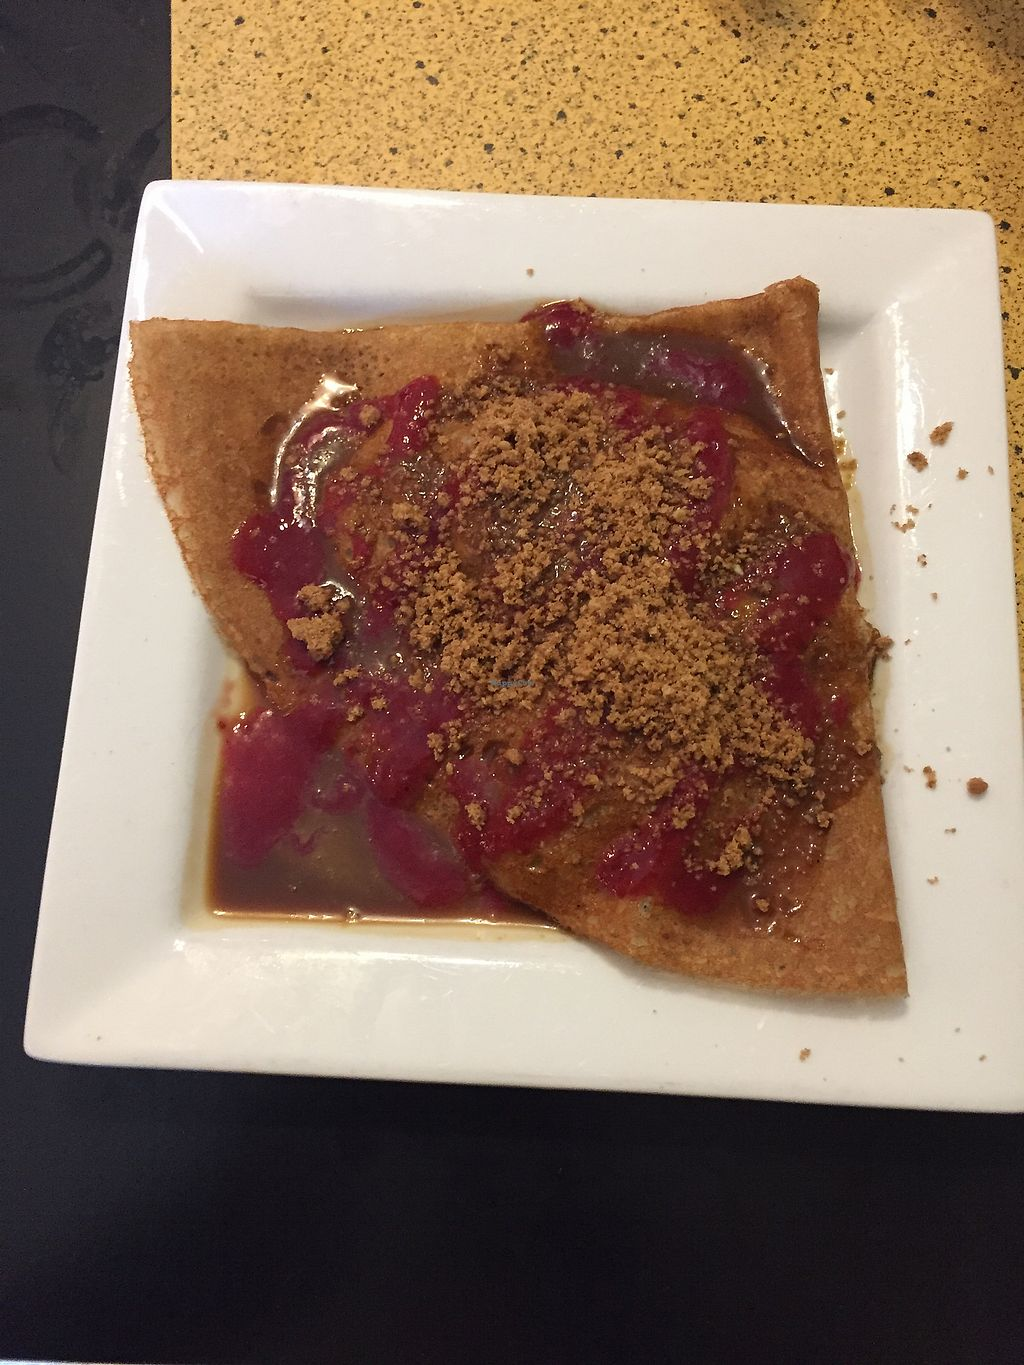 """Photo of Chez Elle  by <a href=""""/members/profile/alexis17"""">alexis17</a> <br/>Apple crisp vegan crepe with raspberry and coconut caramel topping <br/> December 18, 2017  - <a href='/contact/abuse/image/27241/337043'>Report</a>"""